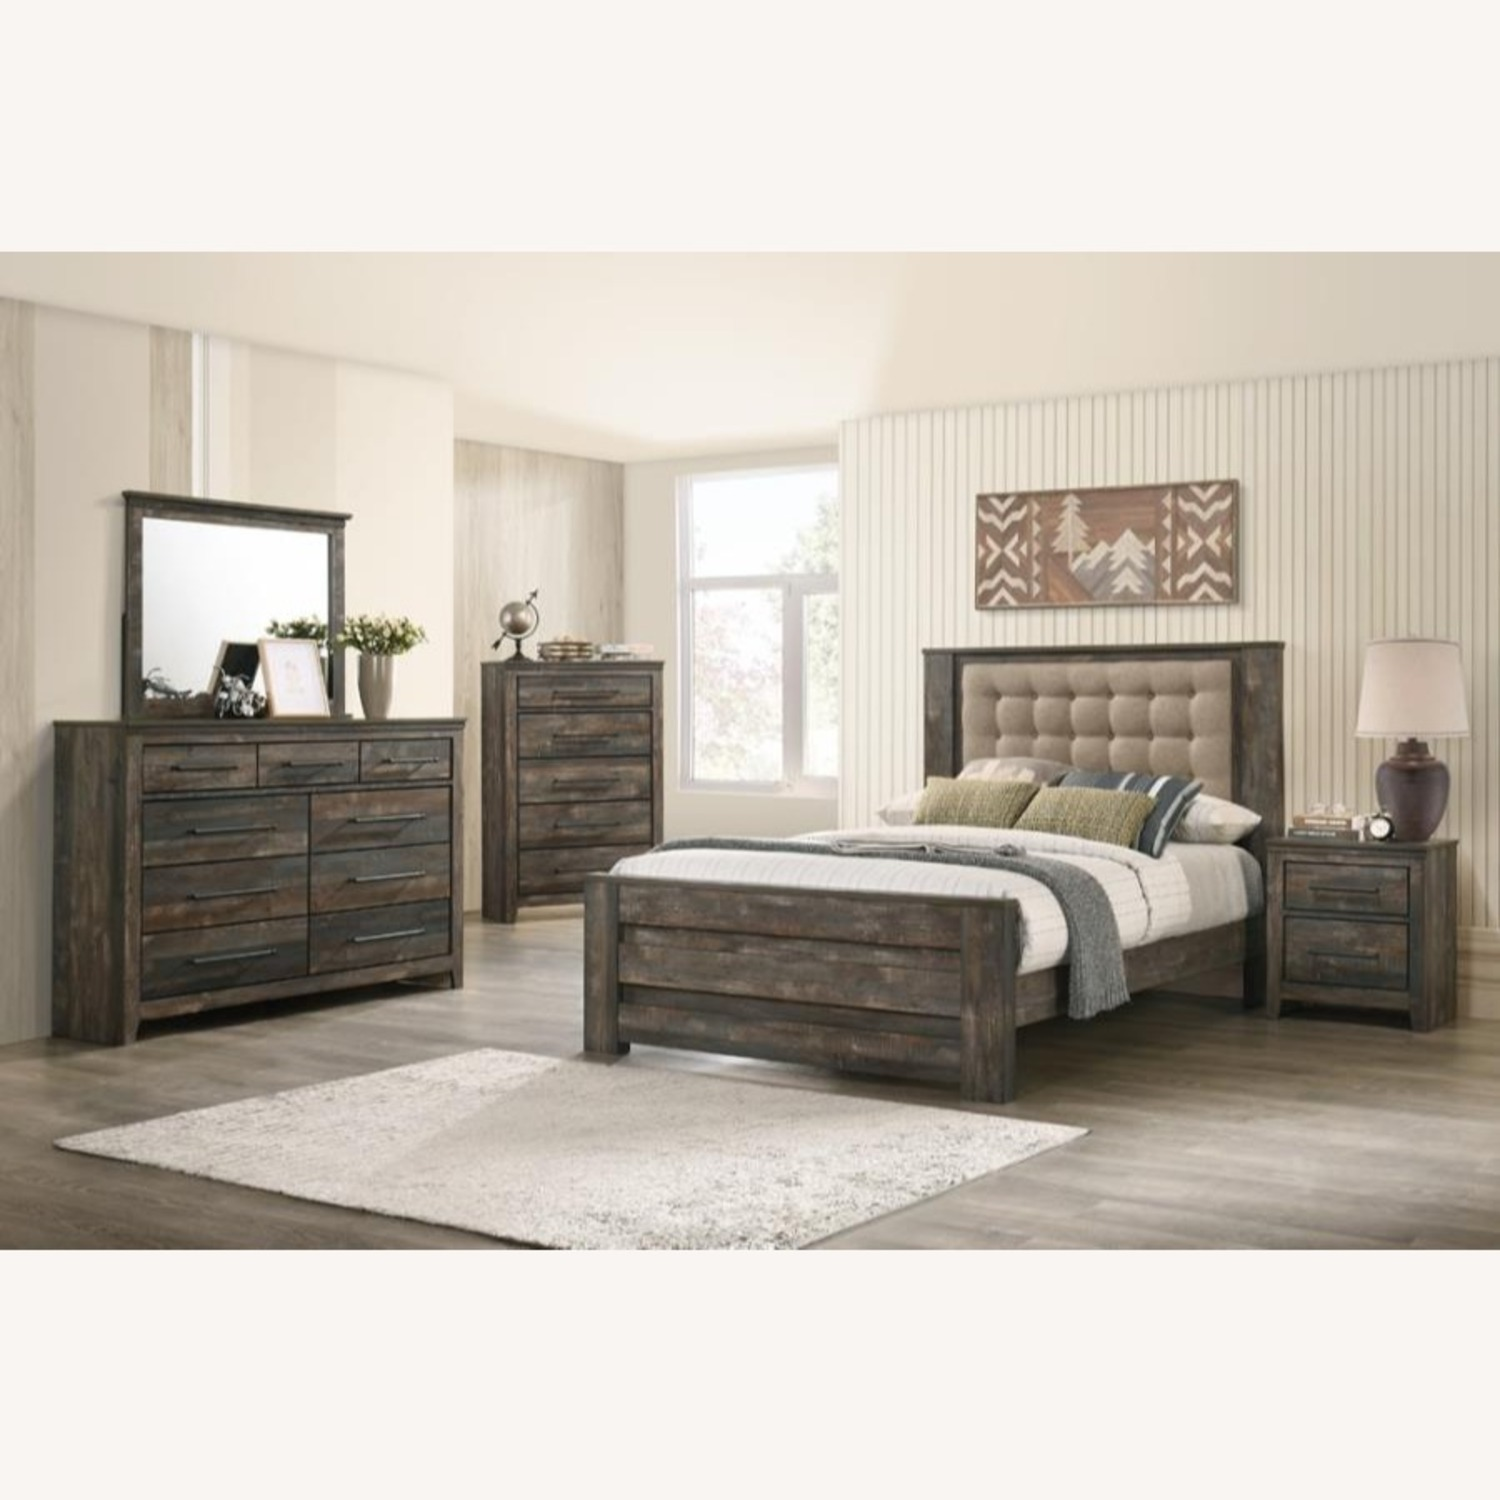 Chest W/ 5 Drawers In Weathered Dark Brown - image-2